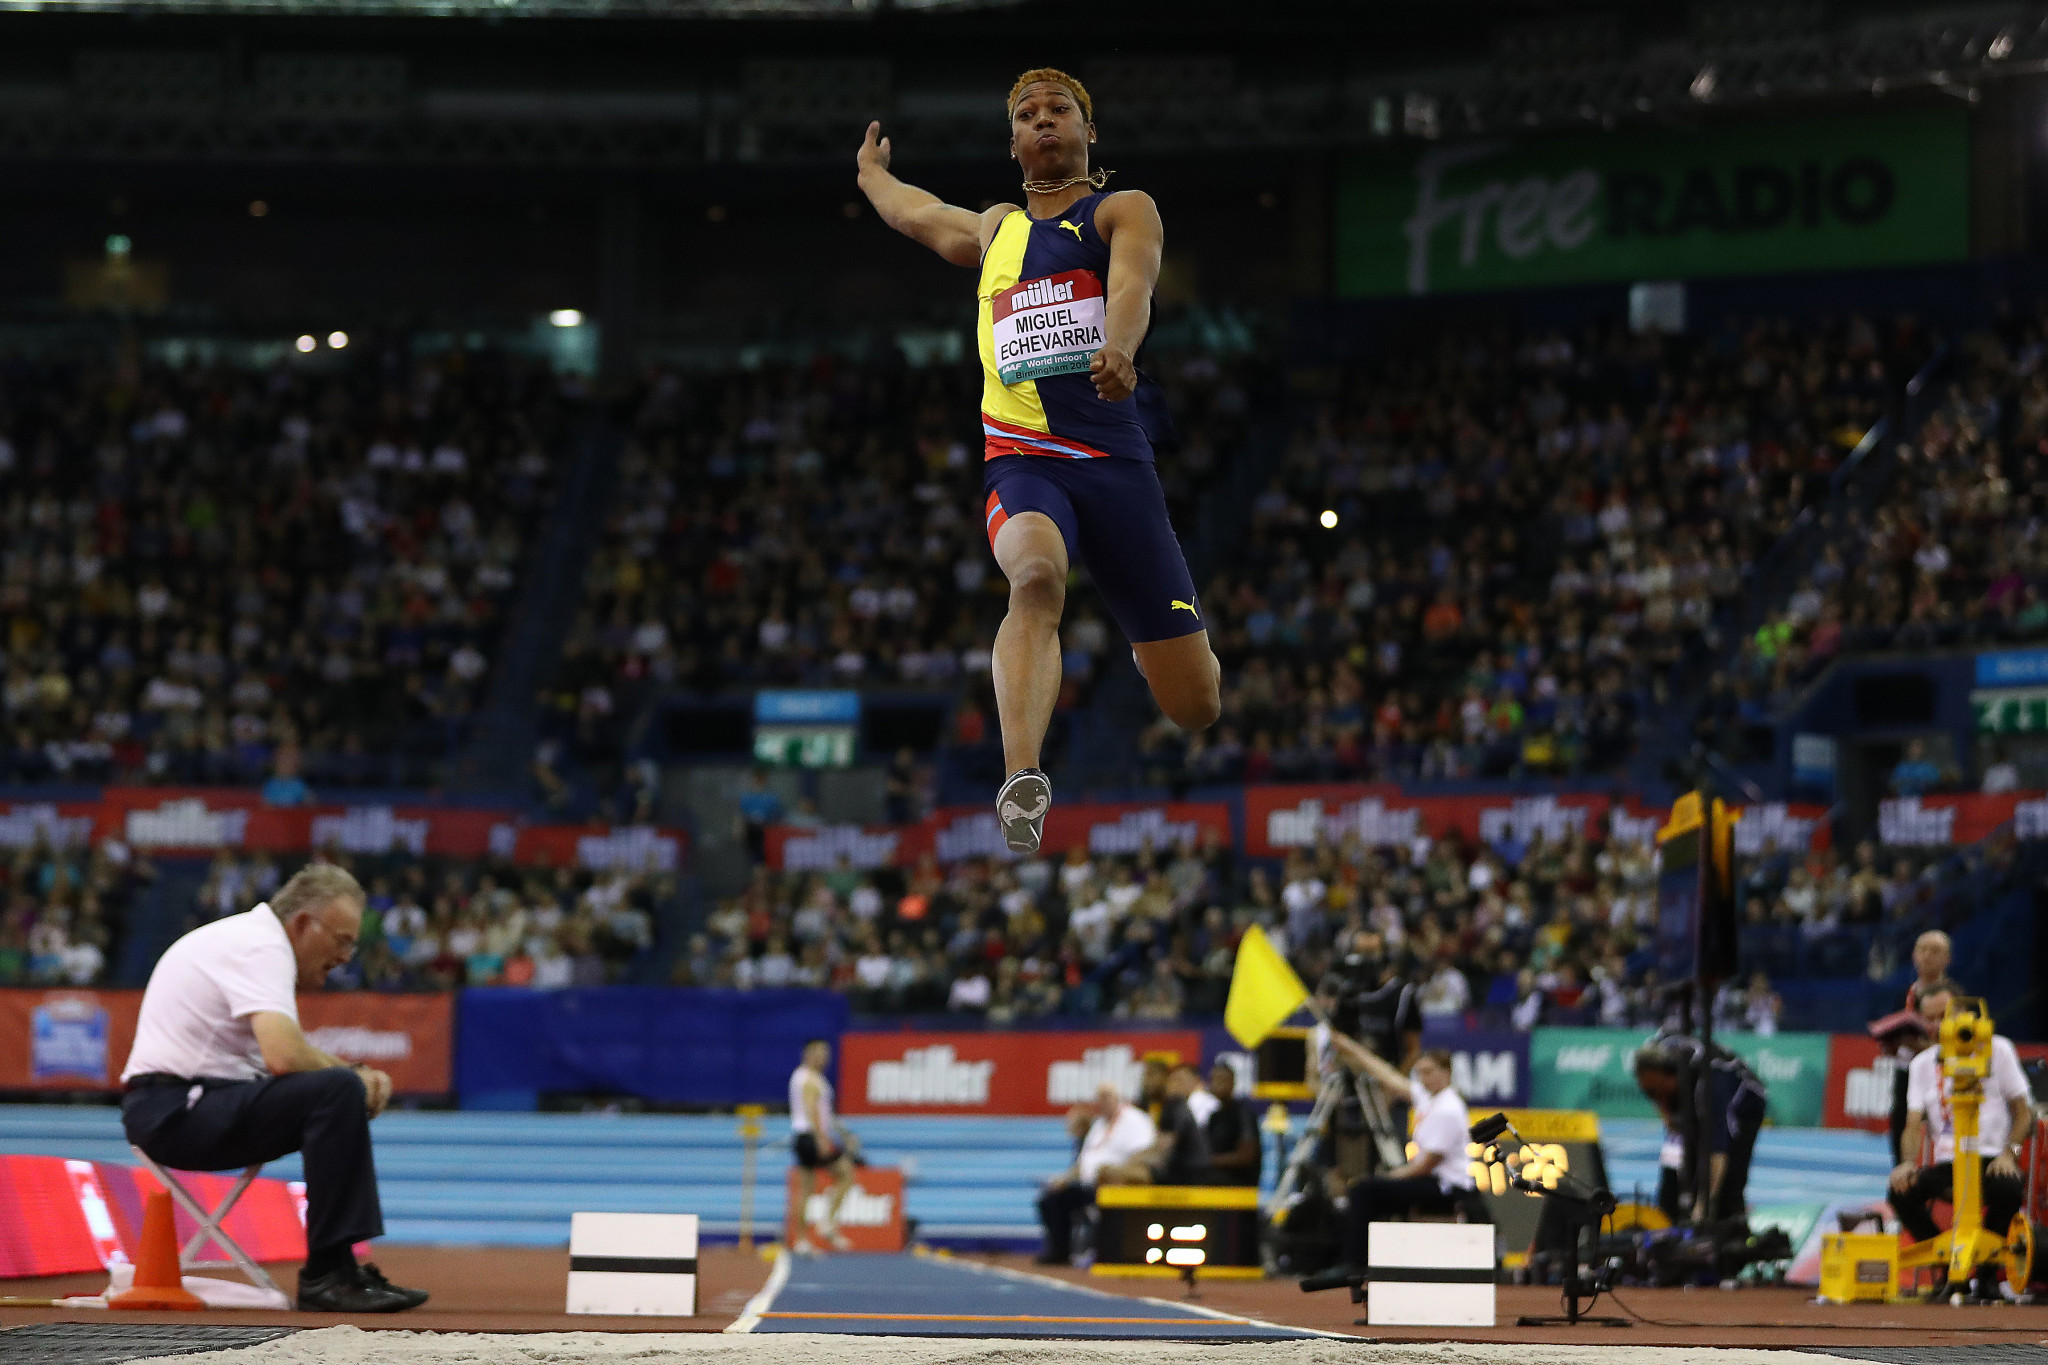 Prize money and wildcards on offer on 2020 World Athletics Indoor Tour